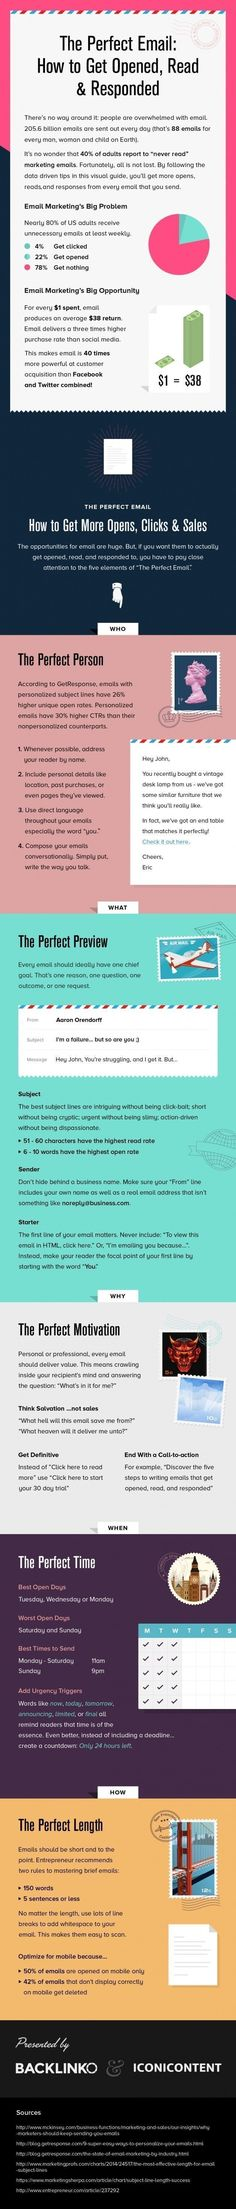 Email Marketing About 2056 billion emails